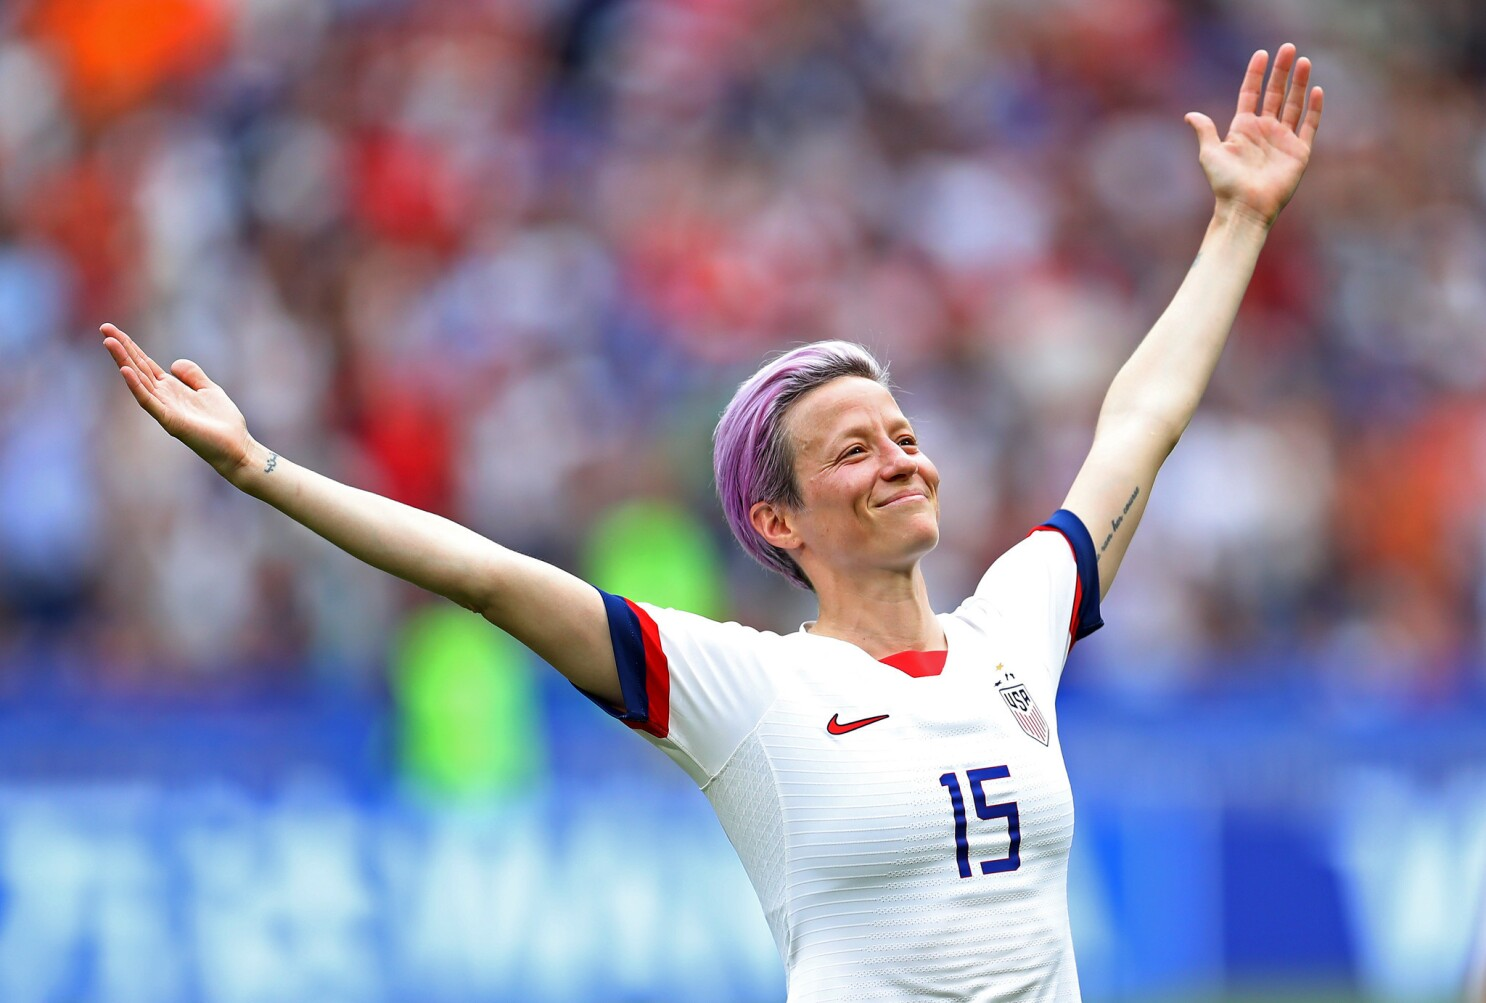 Column: Winged victory: Megan Rapinoe's post-goal pose stood for more than  just another World Cup win - Los Angeles Times